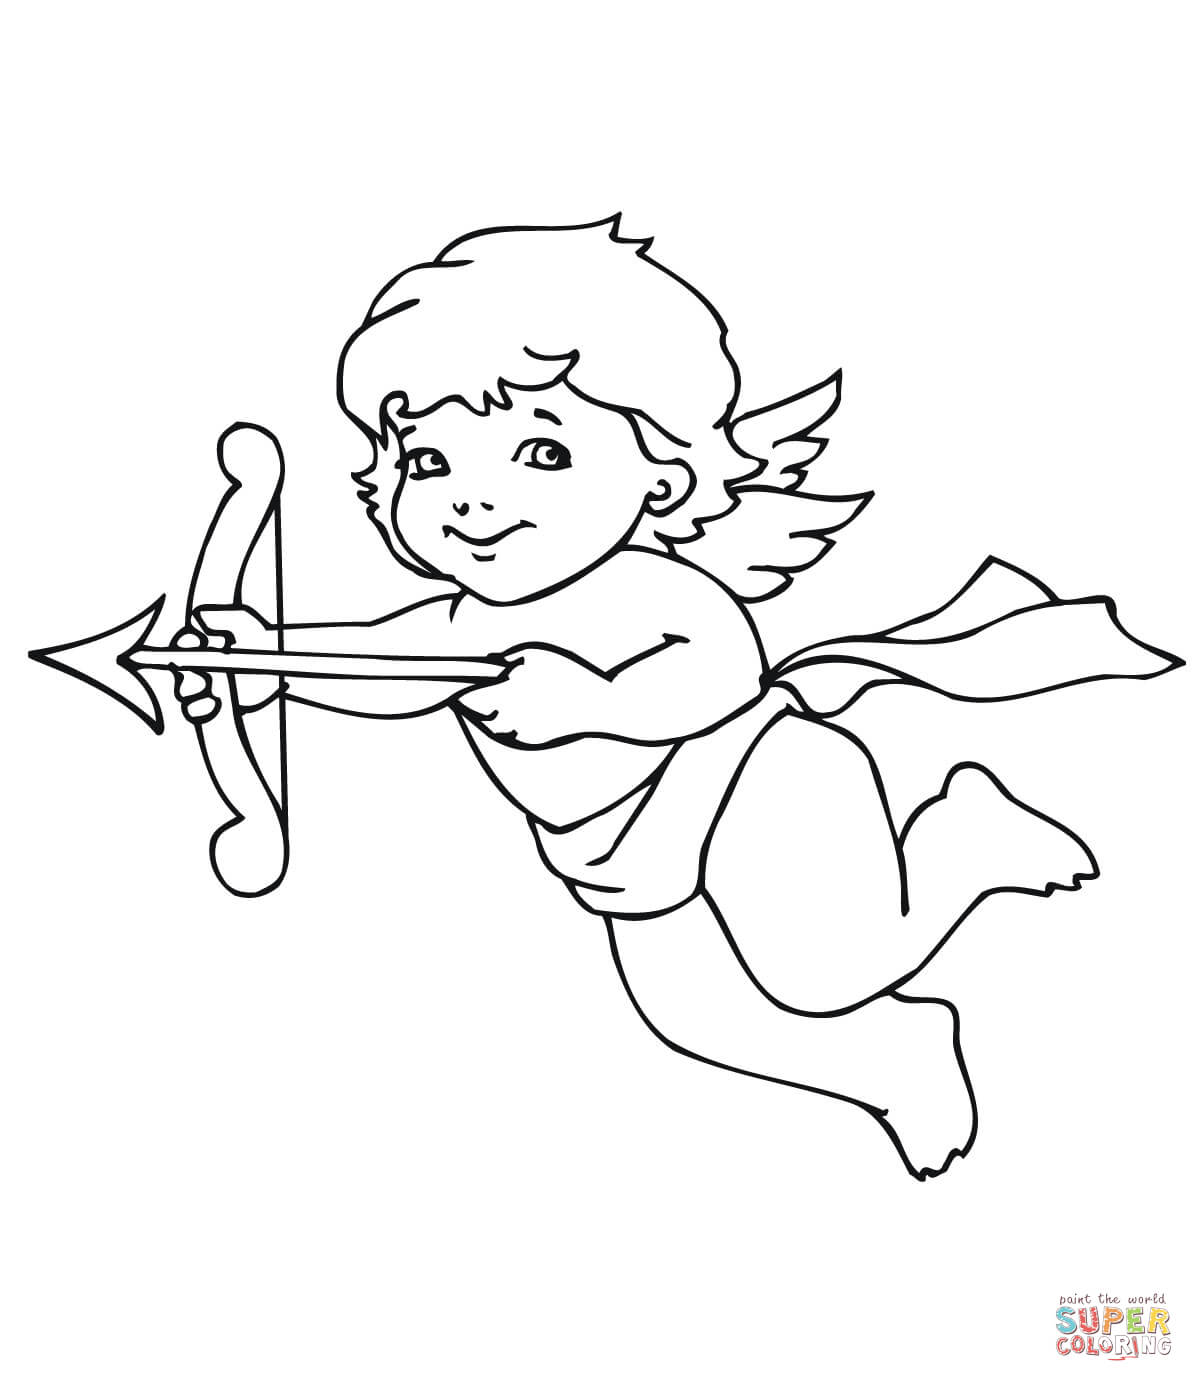 1194x1382 Cute Valentine Cupid Coloring Page Free Printable Coloring Pages